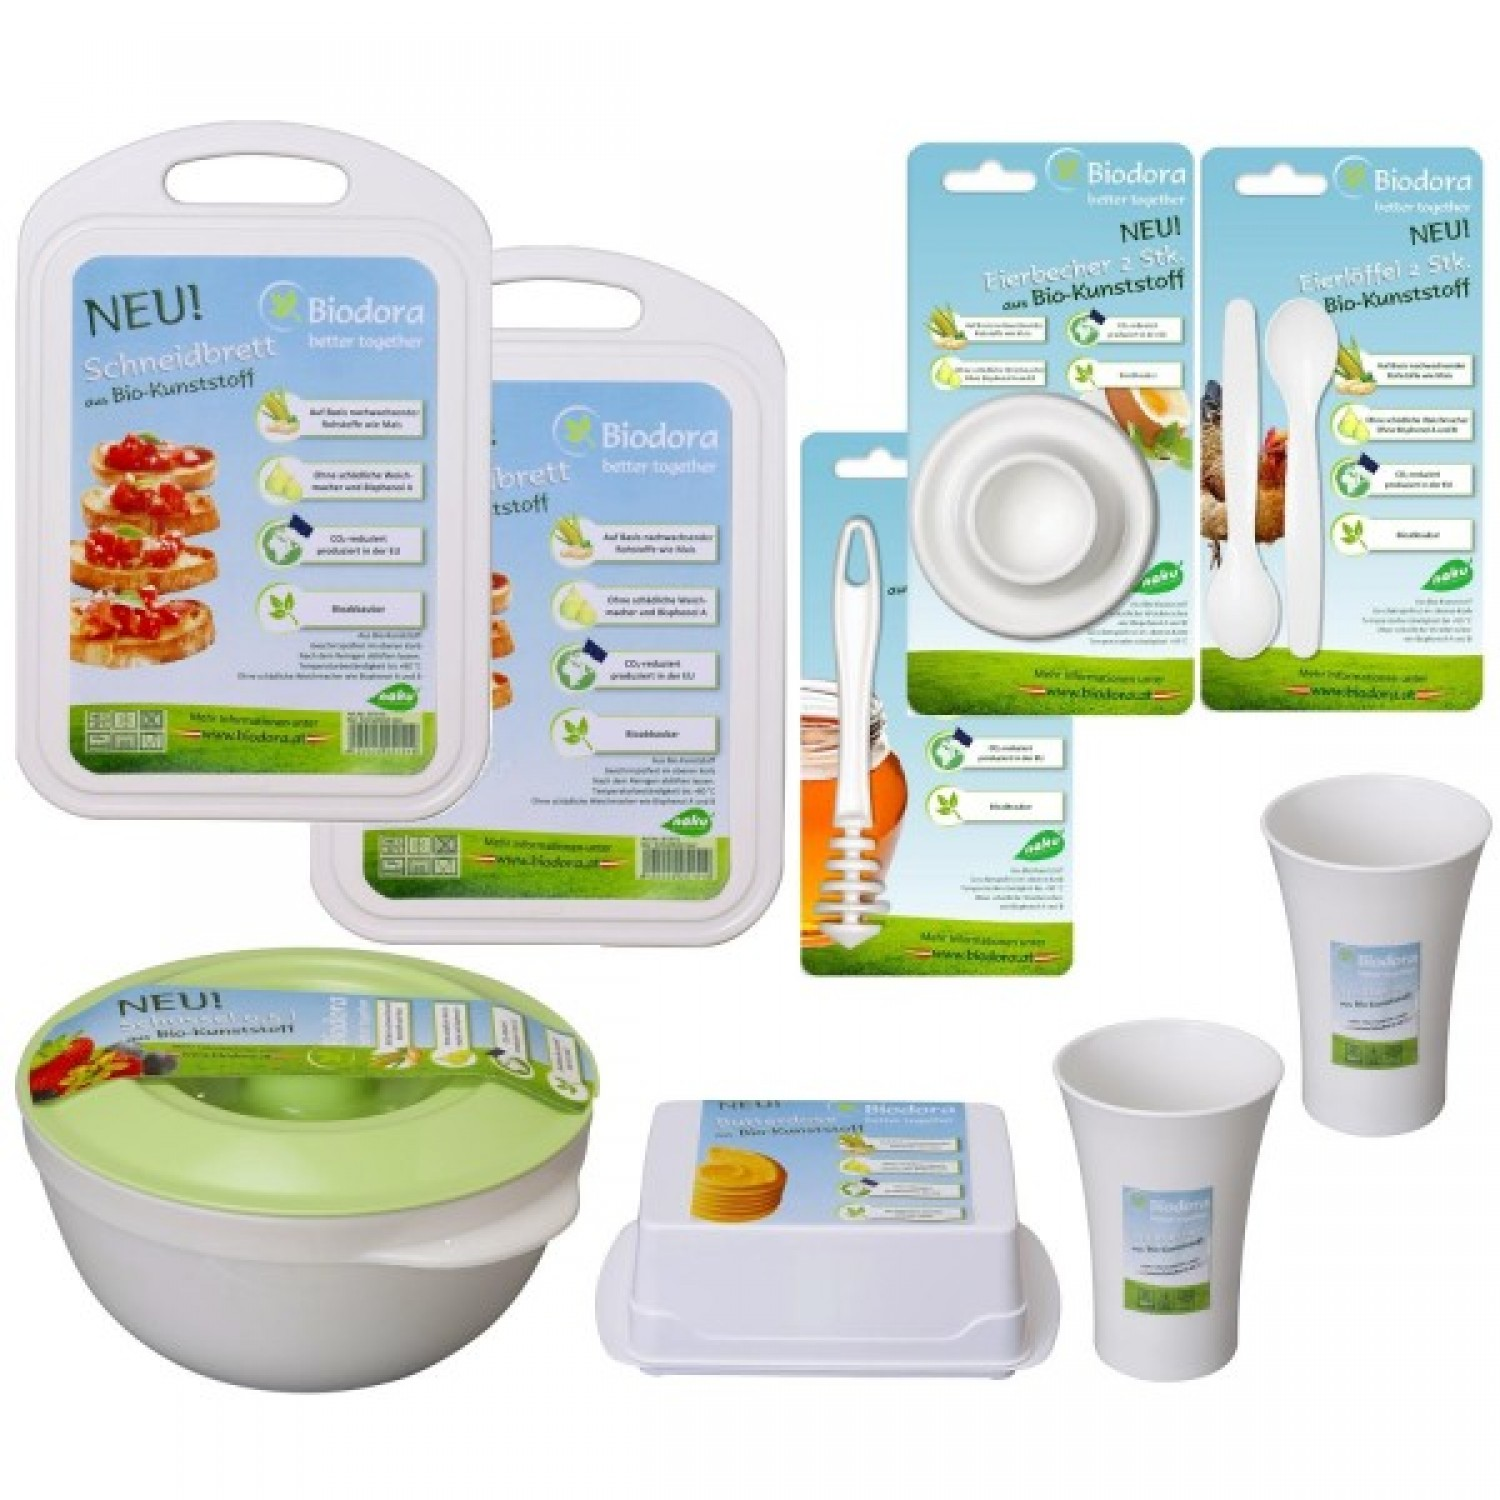 Breakfast Set made of bioplastics from Biodora